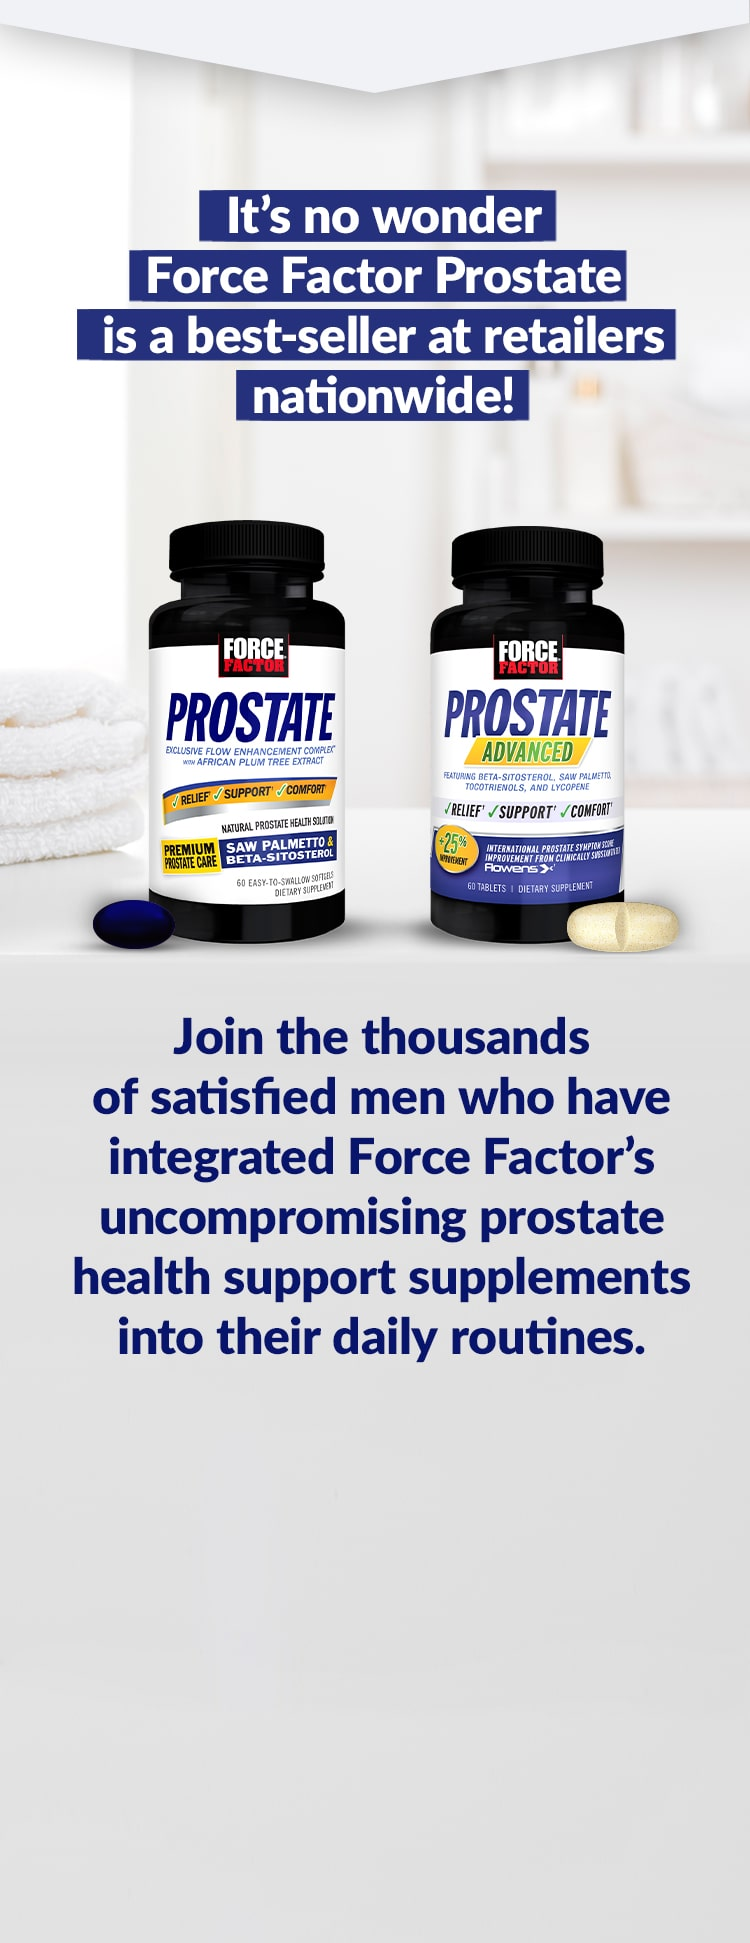 It's no wonder Force Factor Prostate is a best-seller at retailers nationwide! Join the thousands of satisfied men who have integrated Force Factor's uncompromising prostate health support supplements into their daily routines.